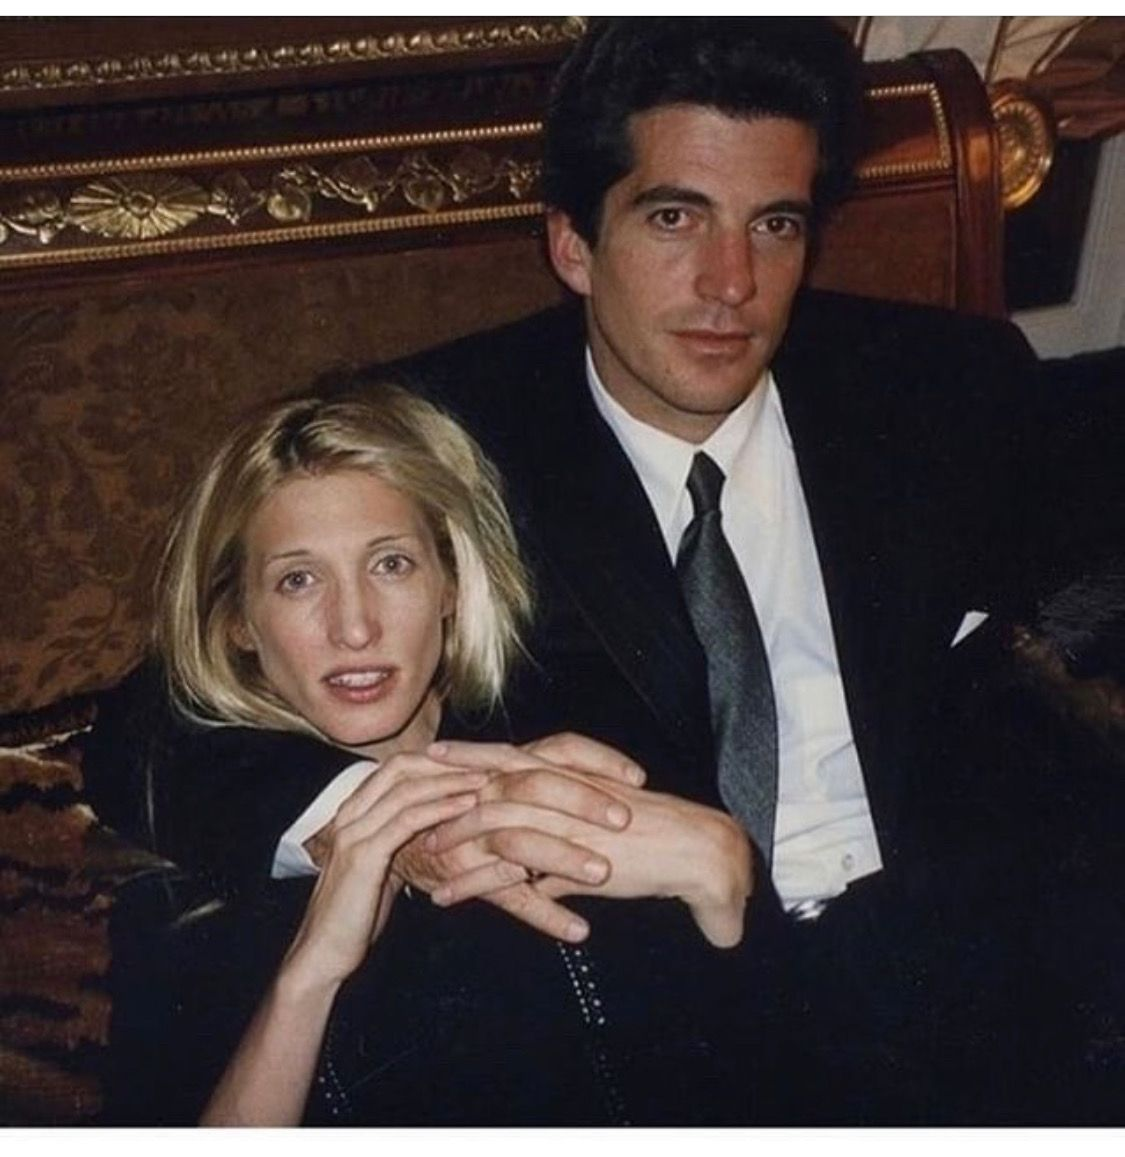 Pin by Kanako Shimada on Style Icons | Carolyn bessette kennedy ...